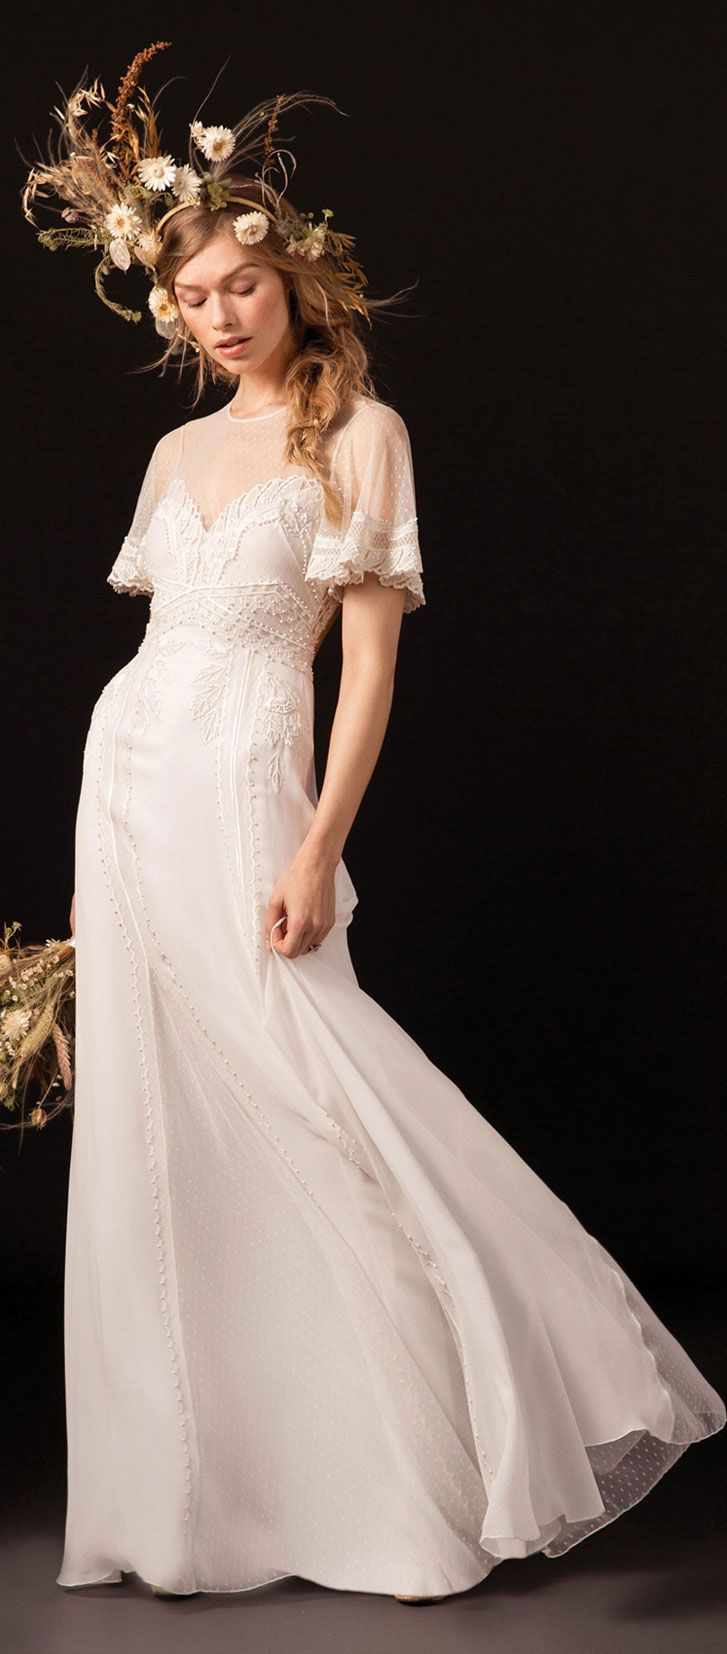 Short and flare sleeve silhouette flares into a fluid skirt #weddingdress #wedding #weddinggown